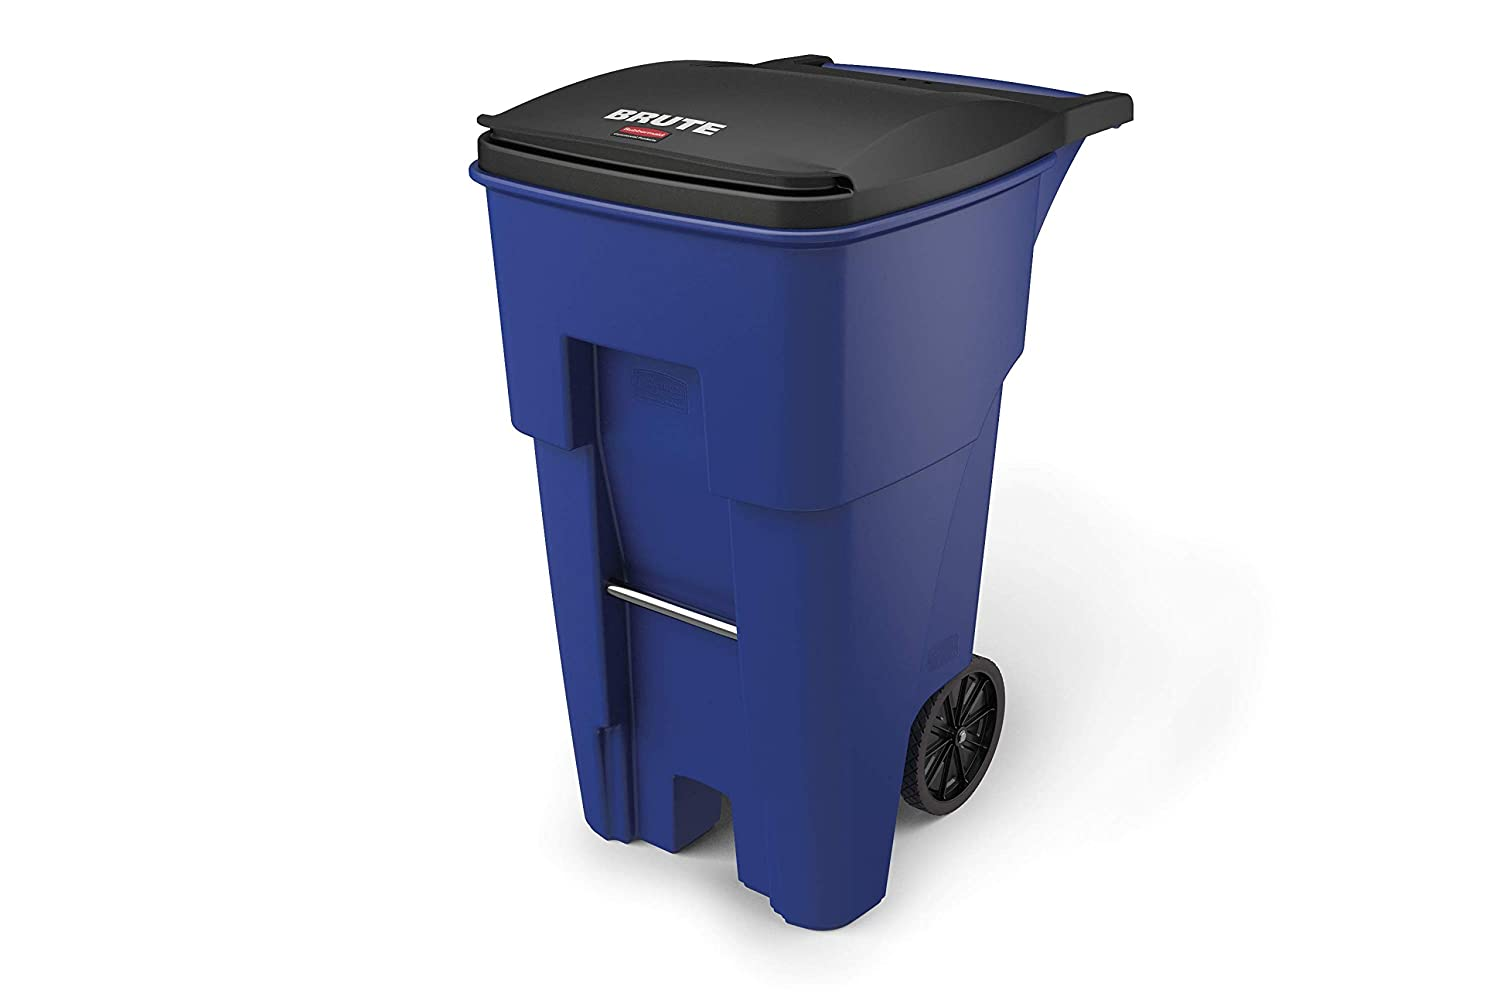 Rubbermaid Commercial Products FG9W2173BLUE BRUTE Rollout Heavy-Duty Wheeled Trash/Garbage Can, 65-Gallon, Blue